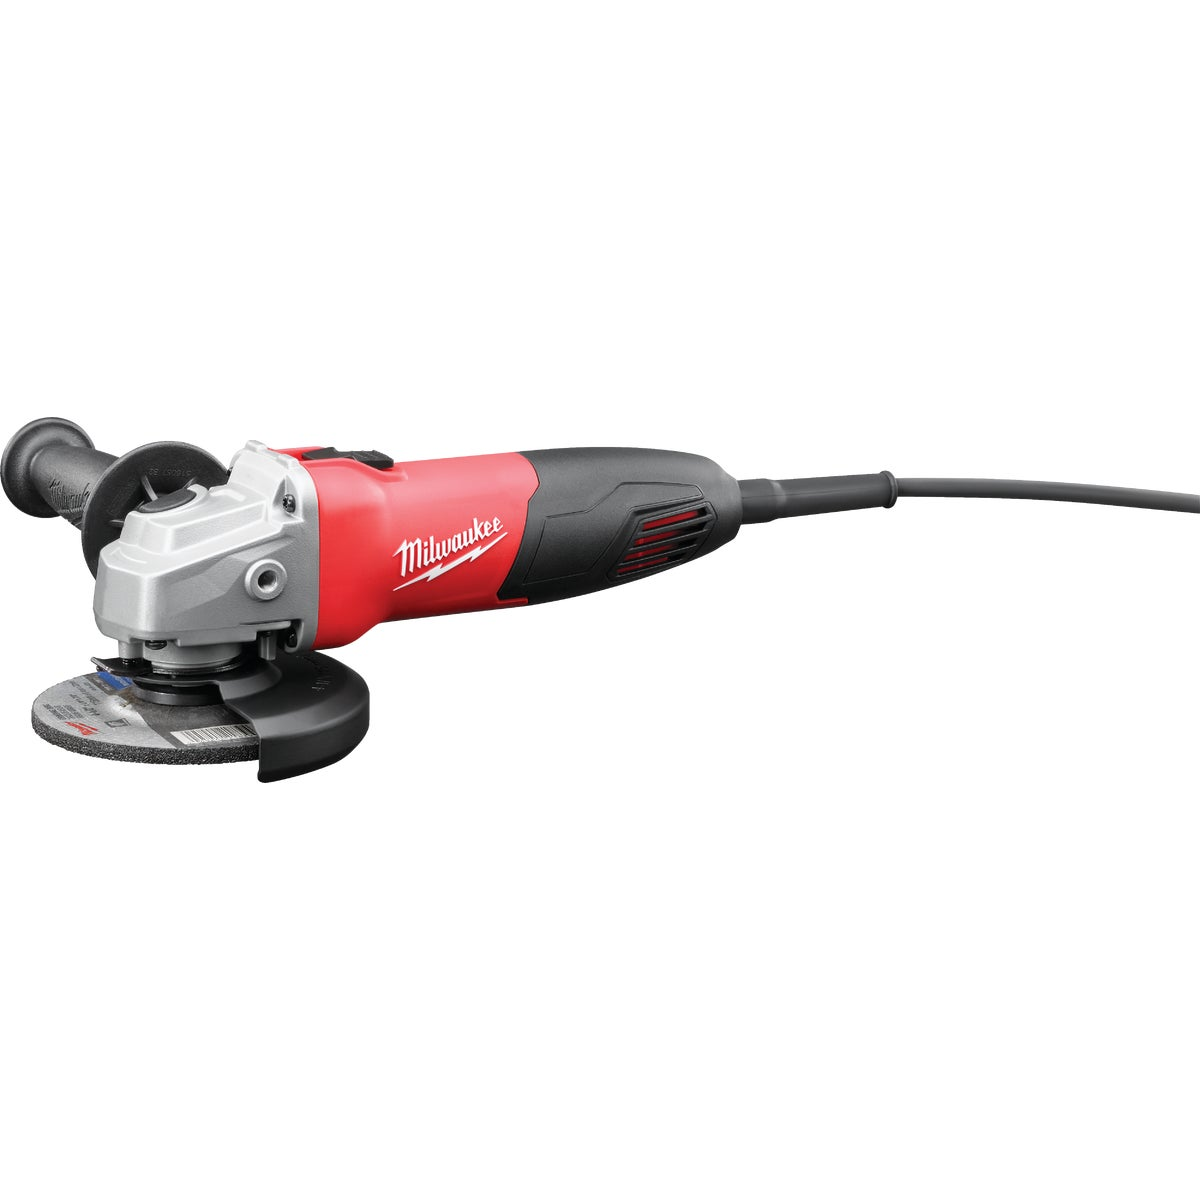 "4-1/2"" 7A ANGLE GRINDER - 613033 by Milwaukee Elec Tool"